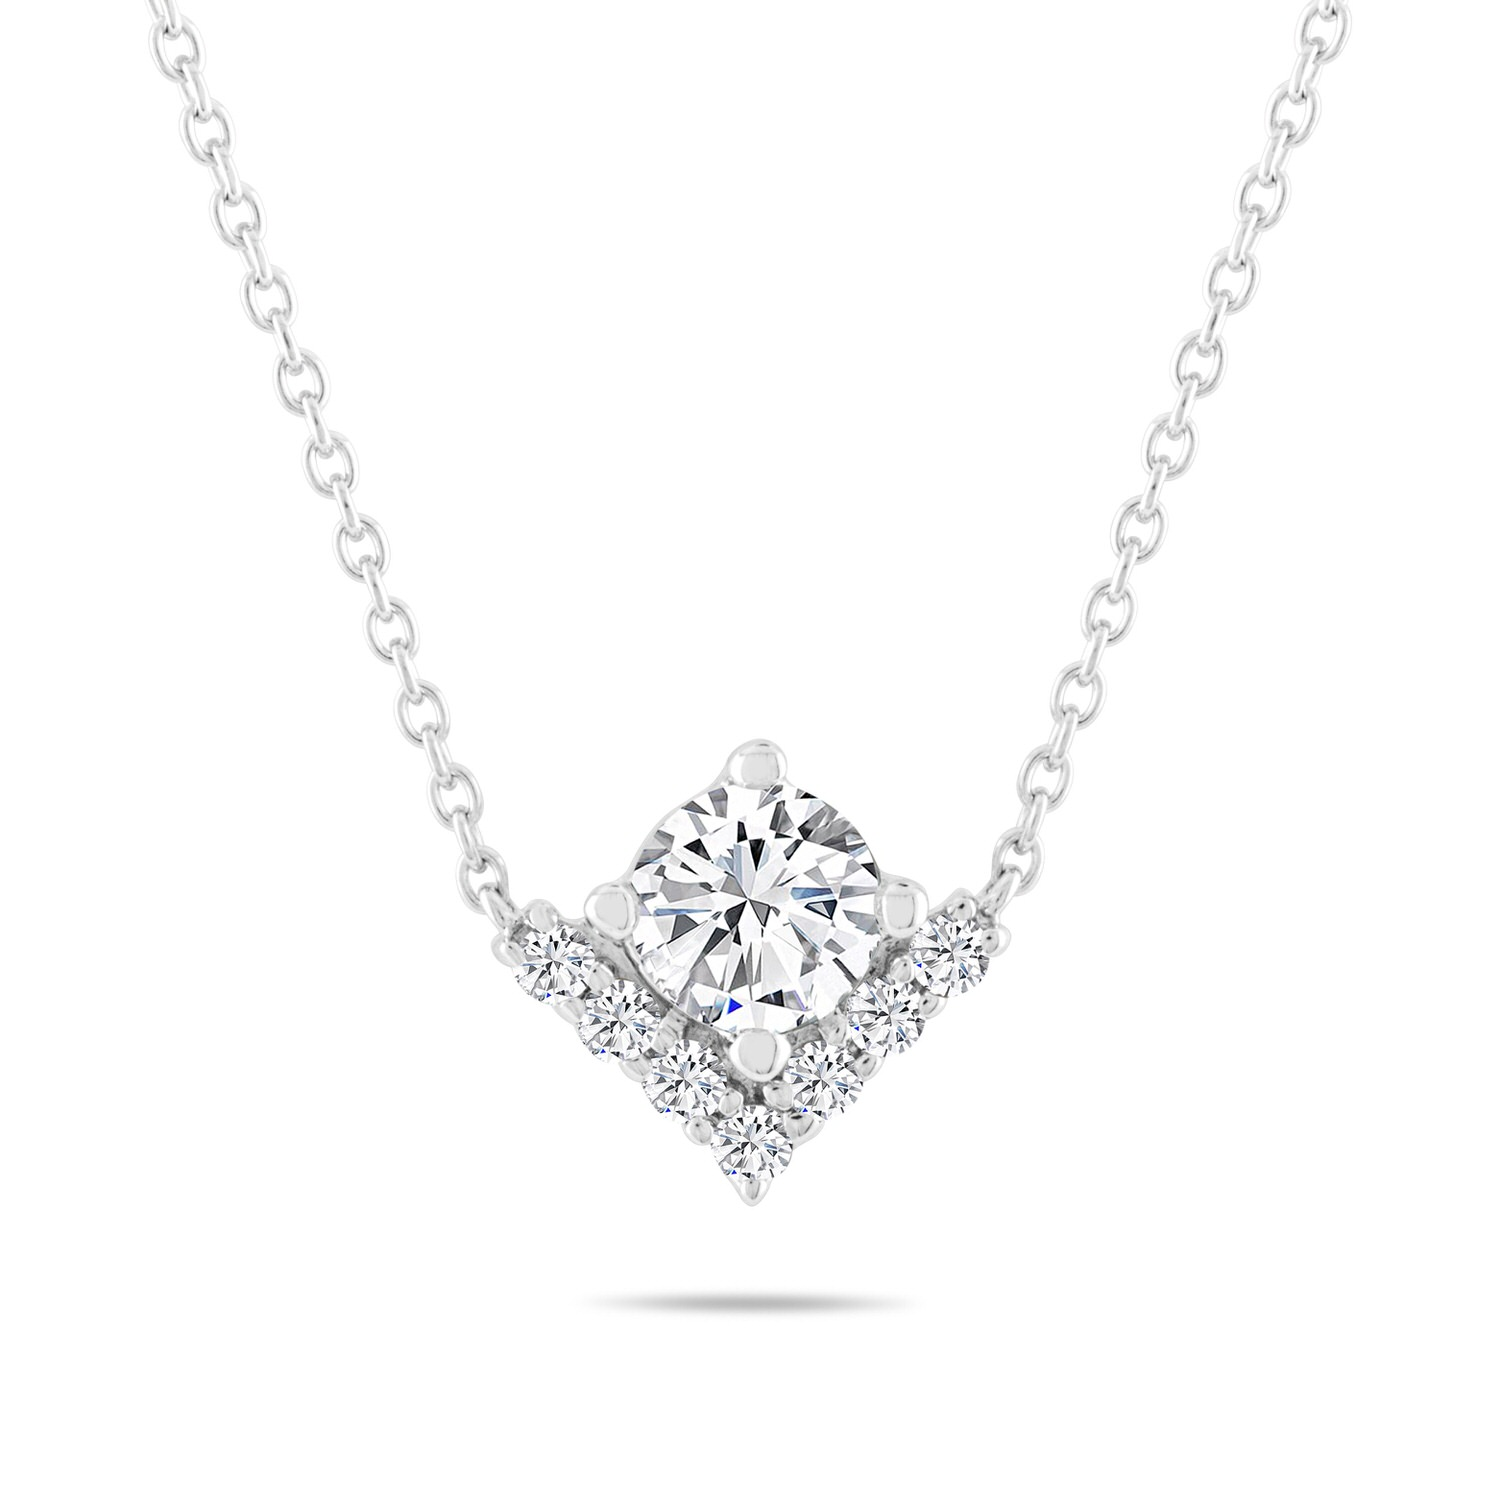 Leo Diamond Necklace 3/4 ct tw Round-cut 14K White Gold 19.5″